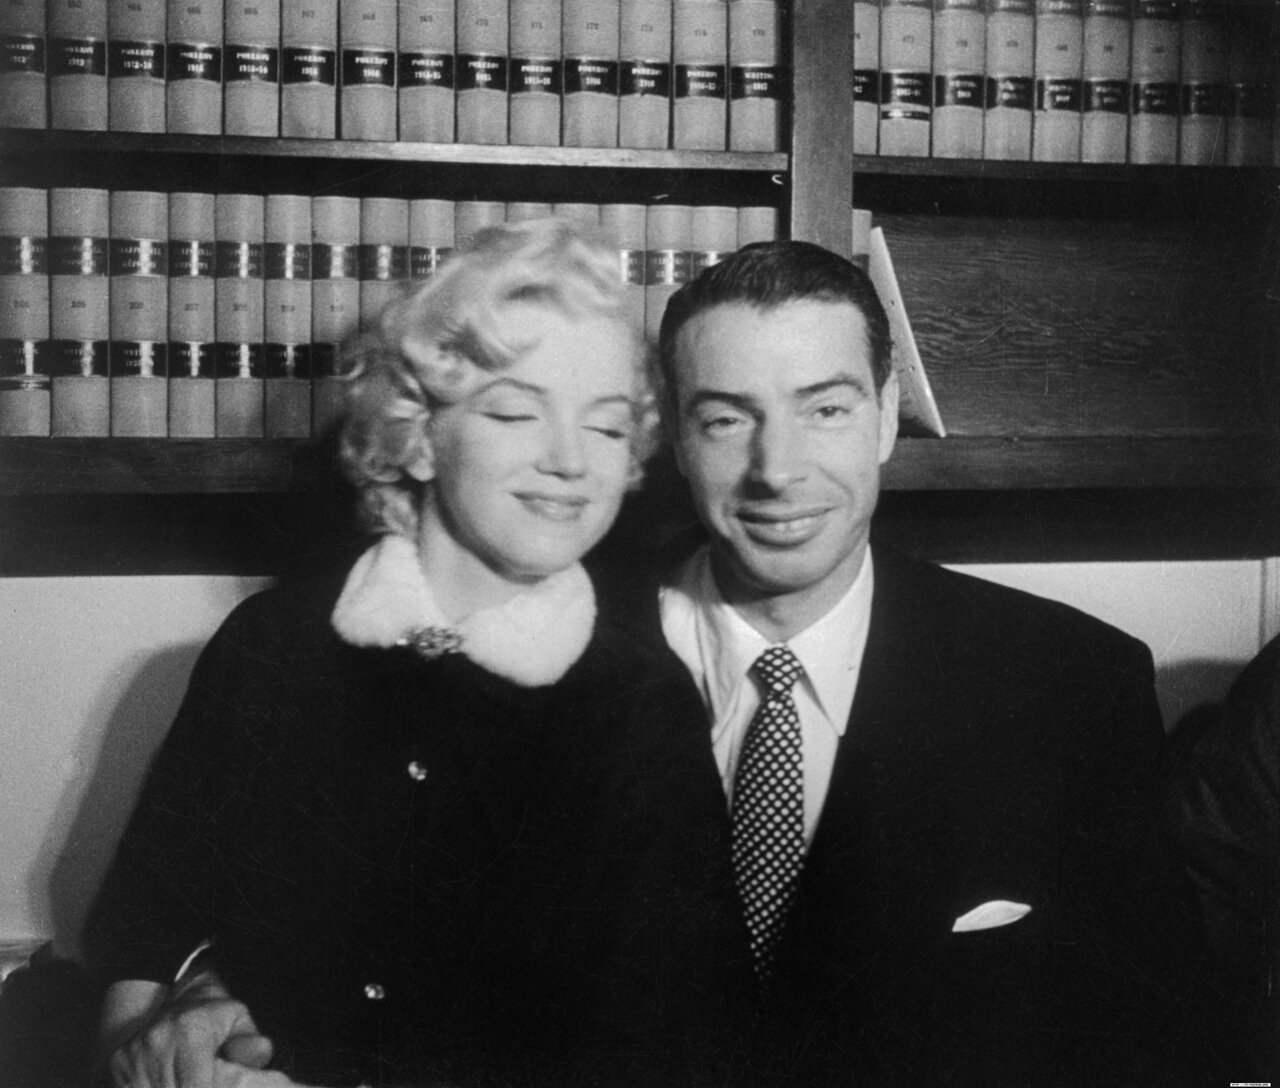 Marilyn Monroe Sitting with Joe DiMaggio